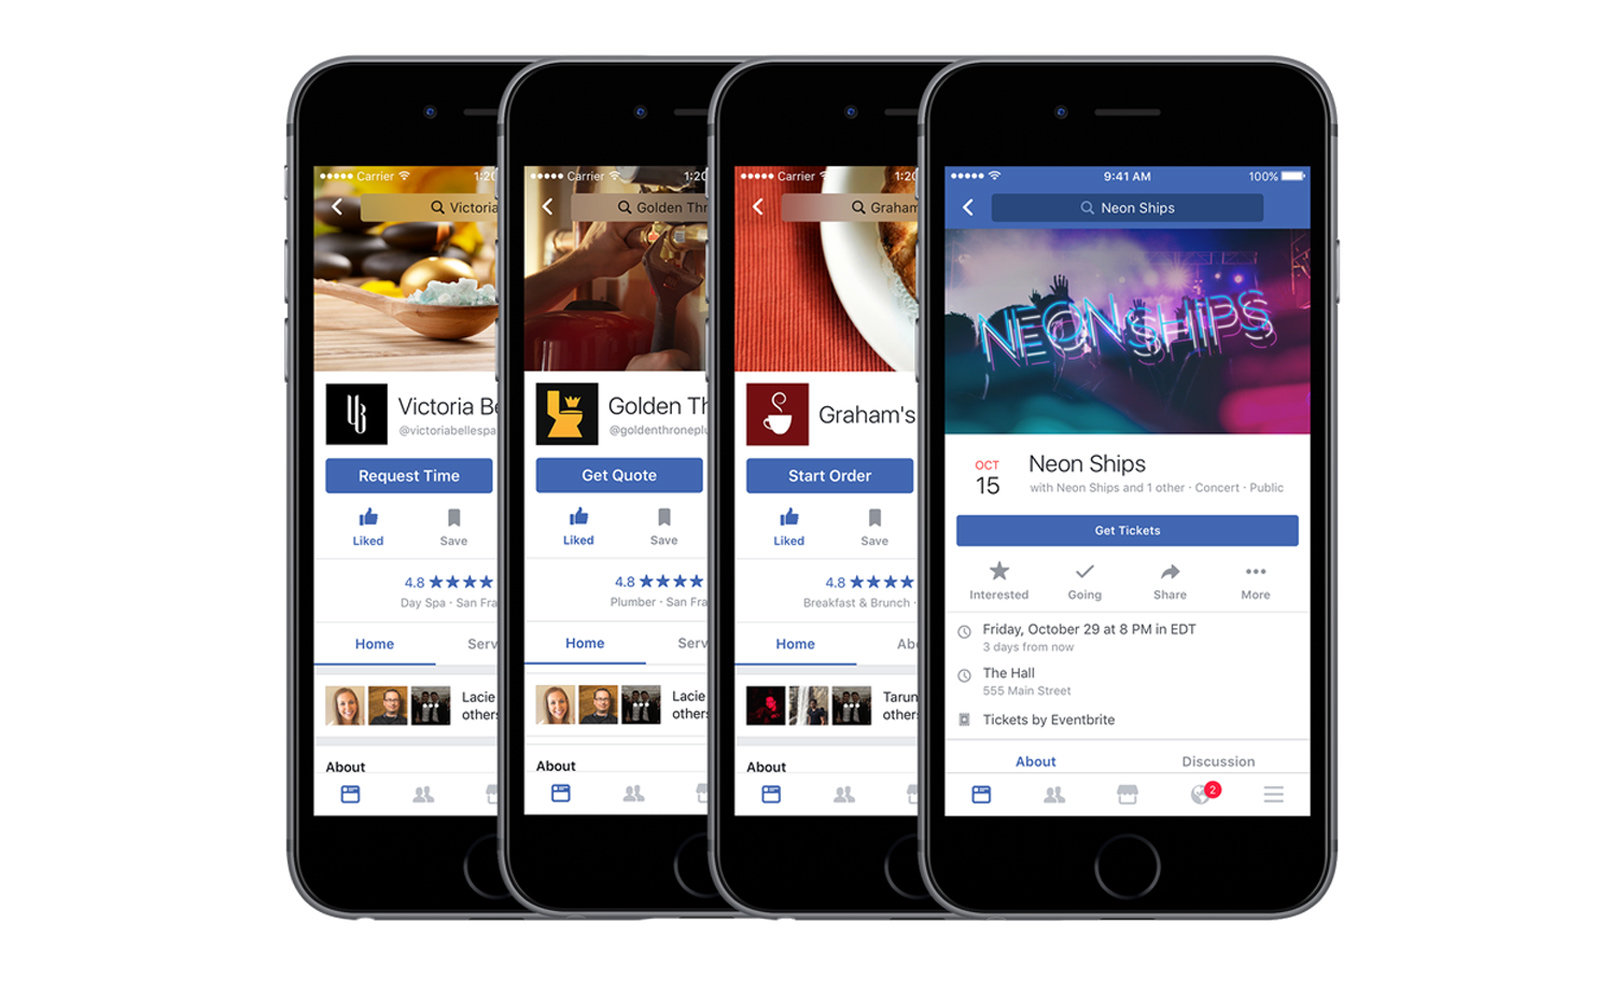 Facebook Recommendations allows you to make dinner reservations and buy movie tickets